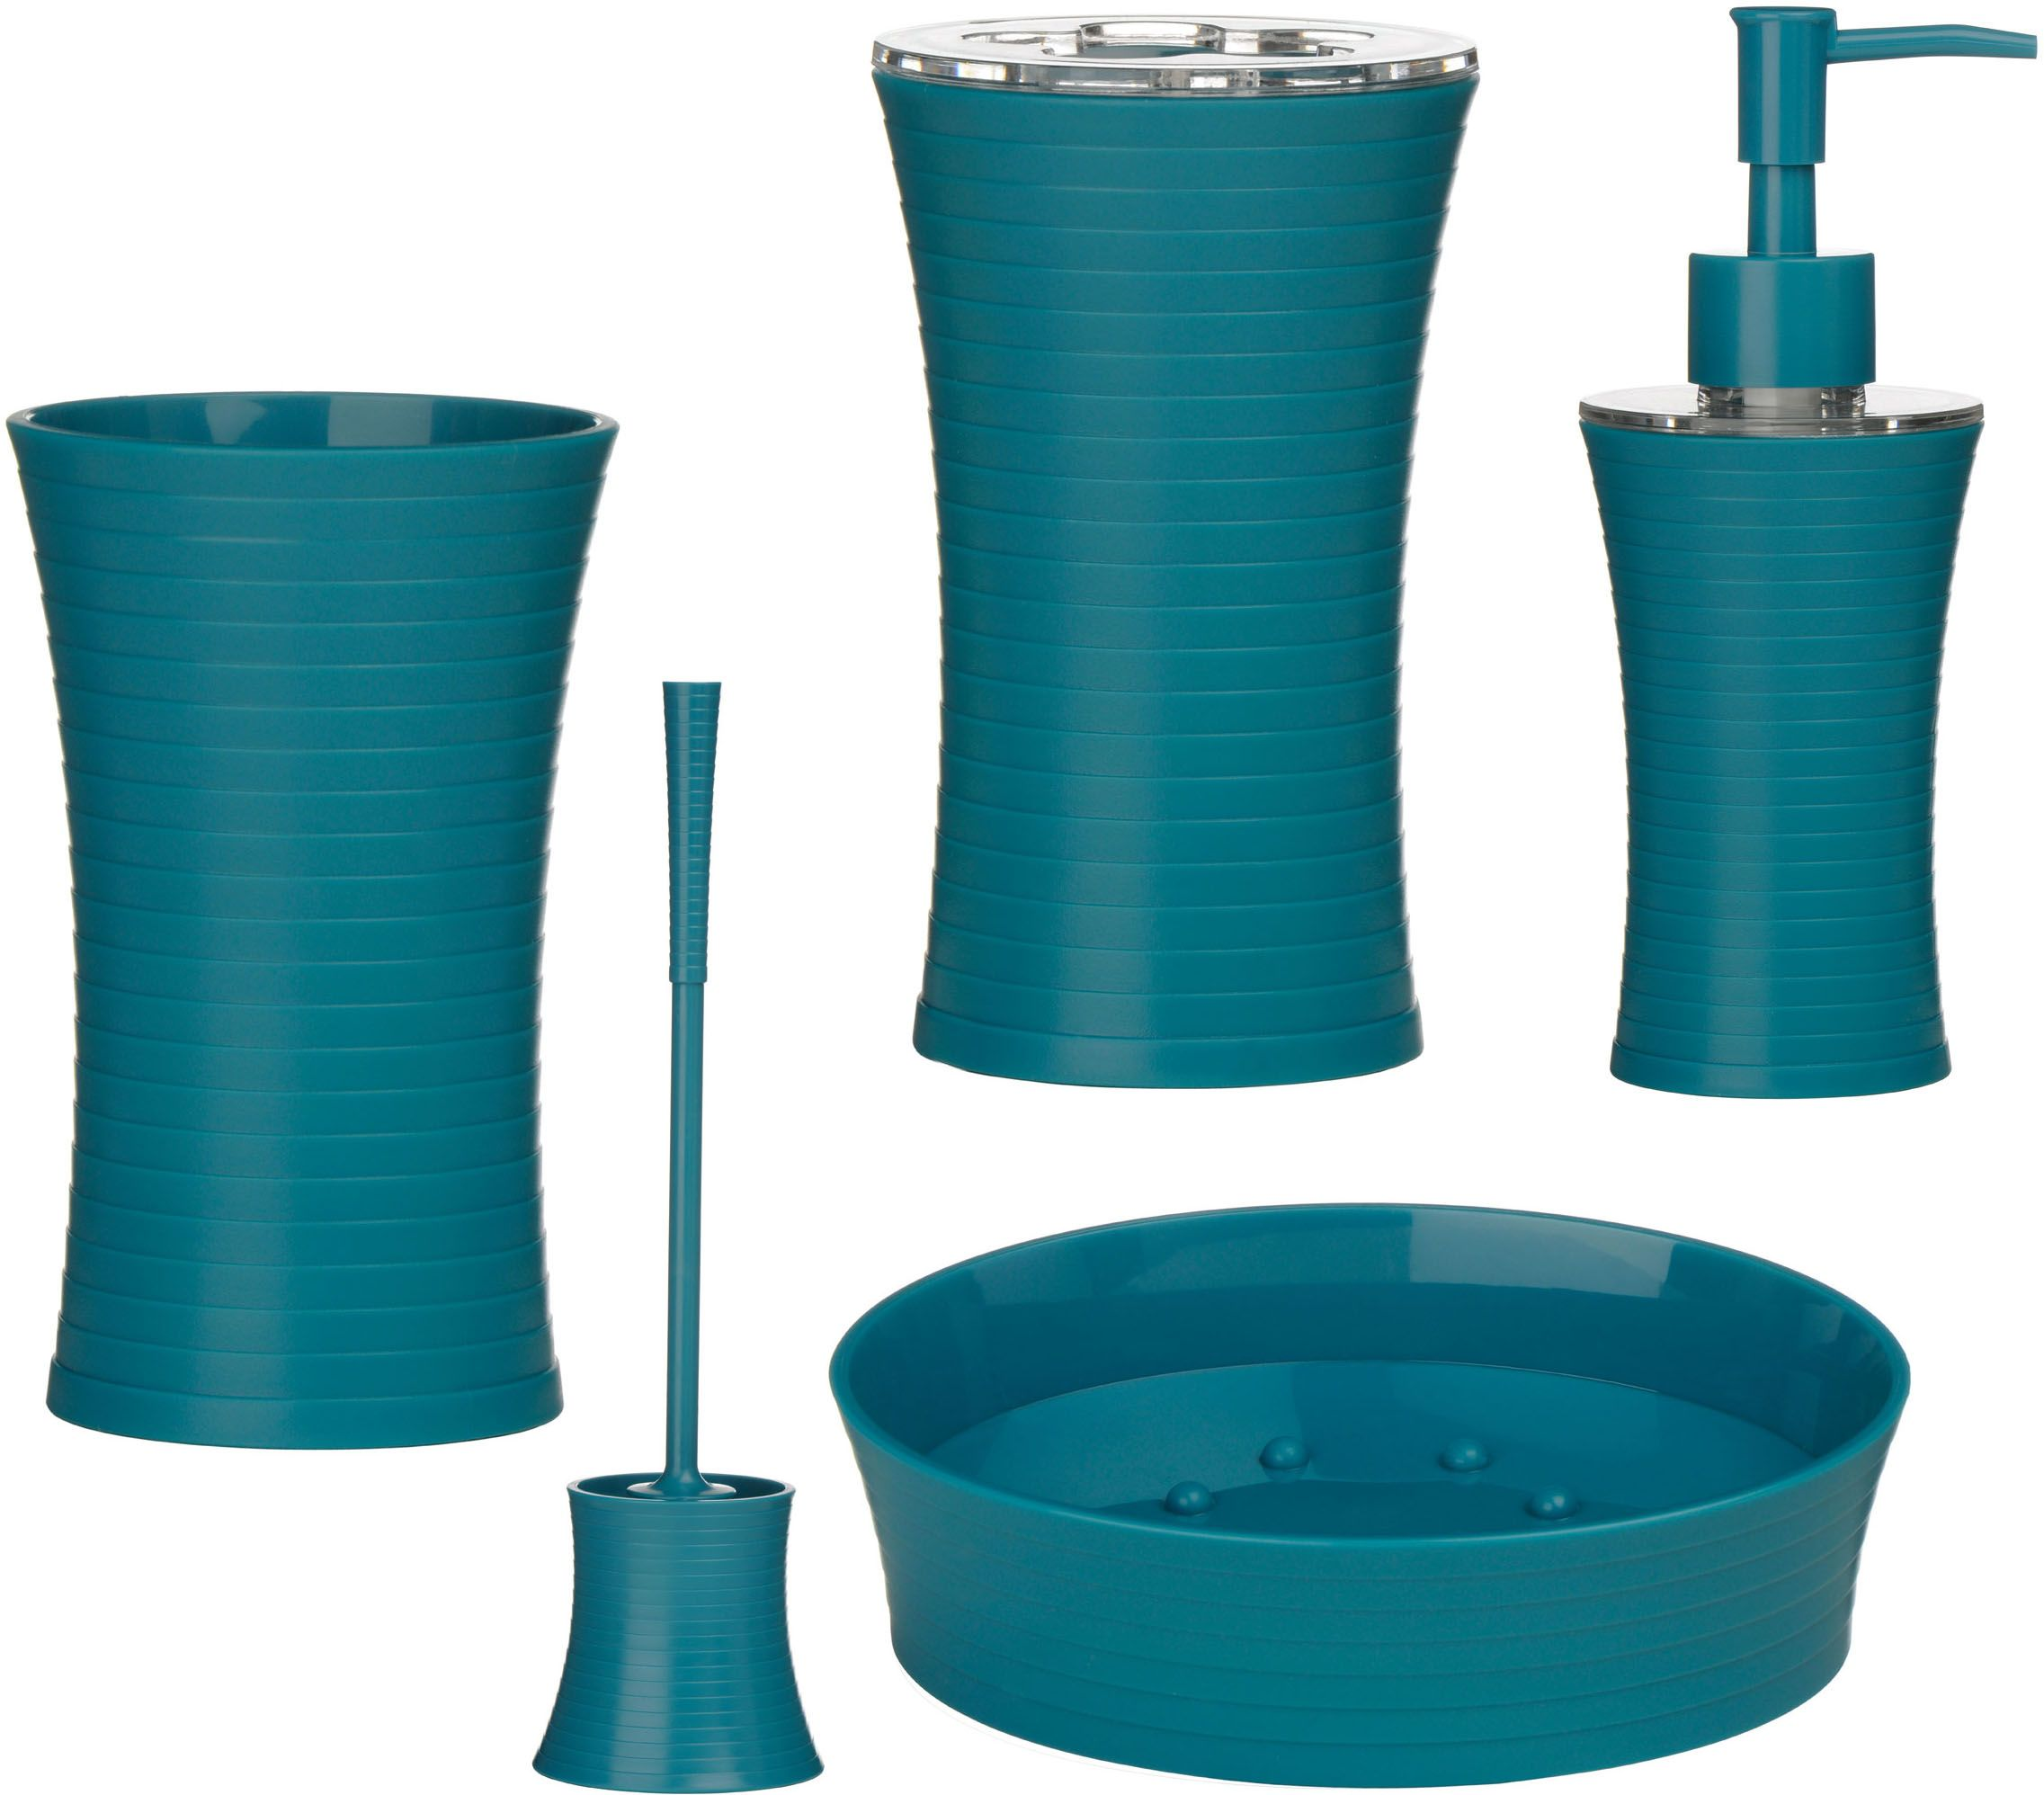 turquoise bathroom accessories 5pc bathroom accessories set turquoise made of plastic abs - Blue Bathroom Accessories Uk